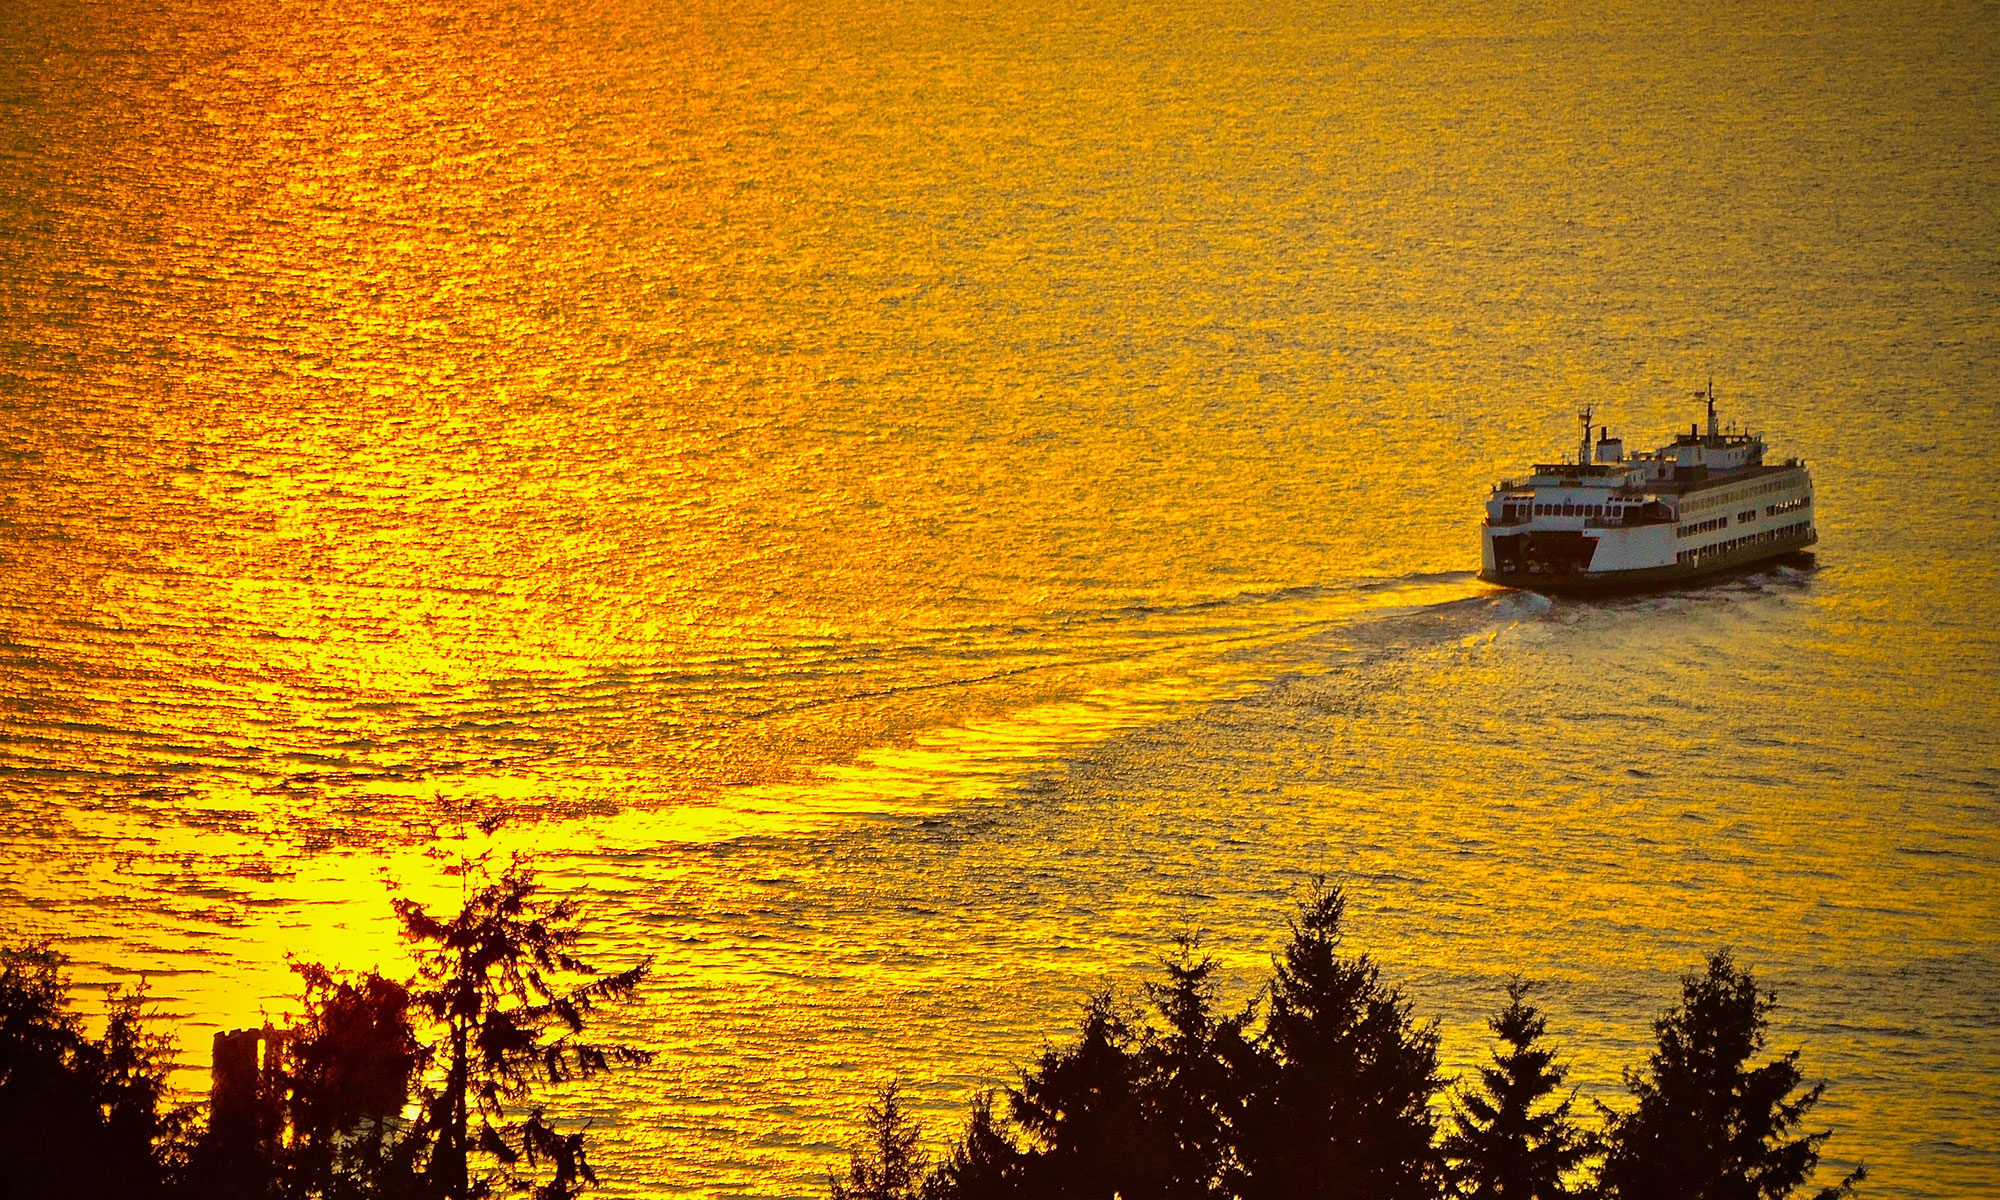 Ferry boat leaving shore